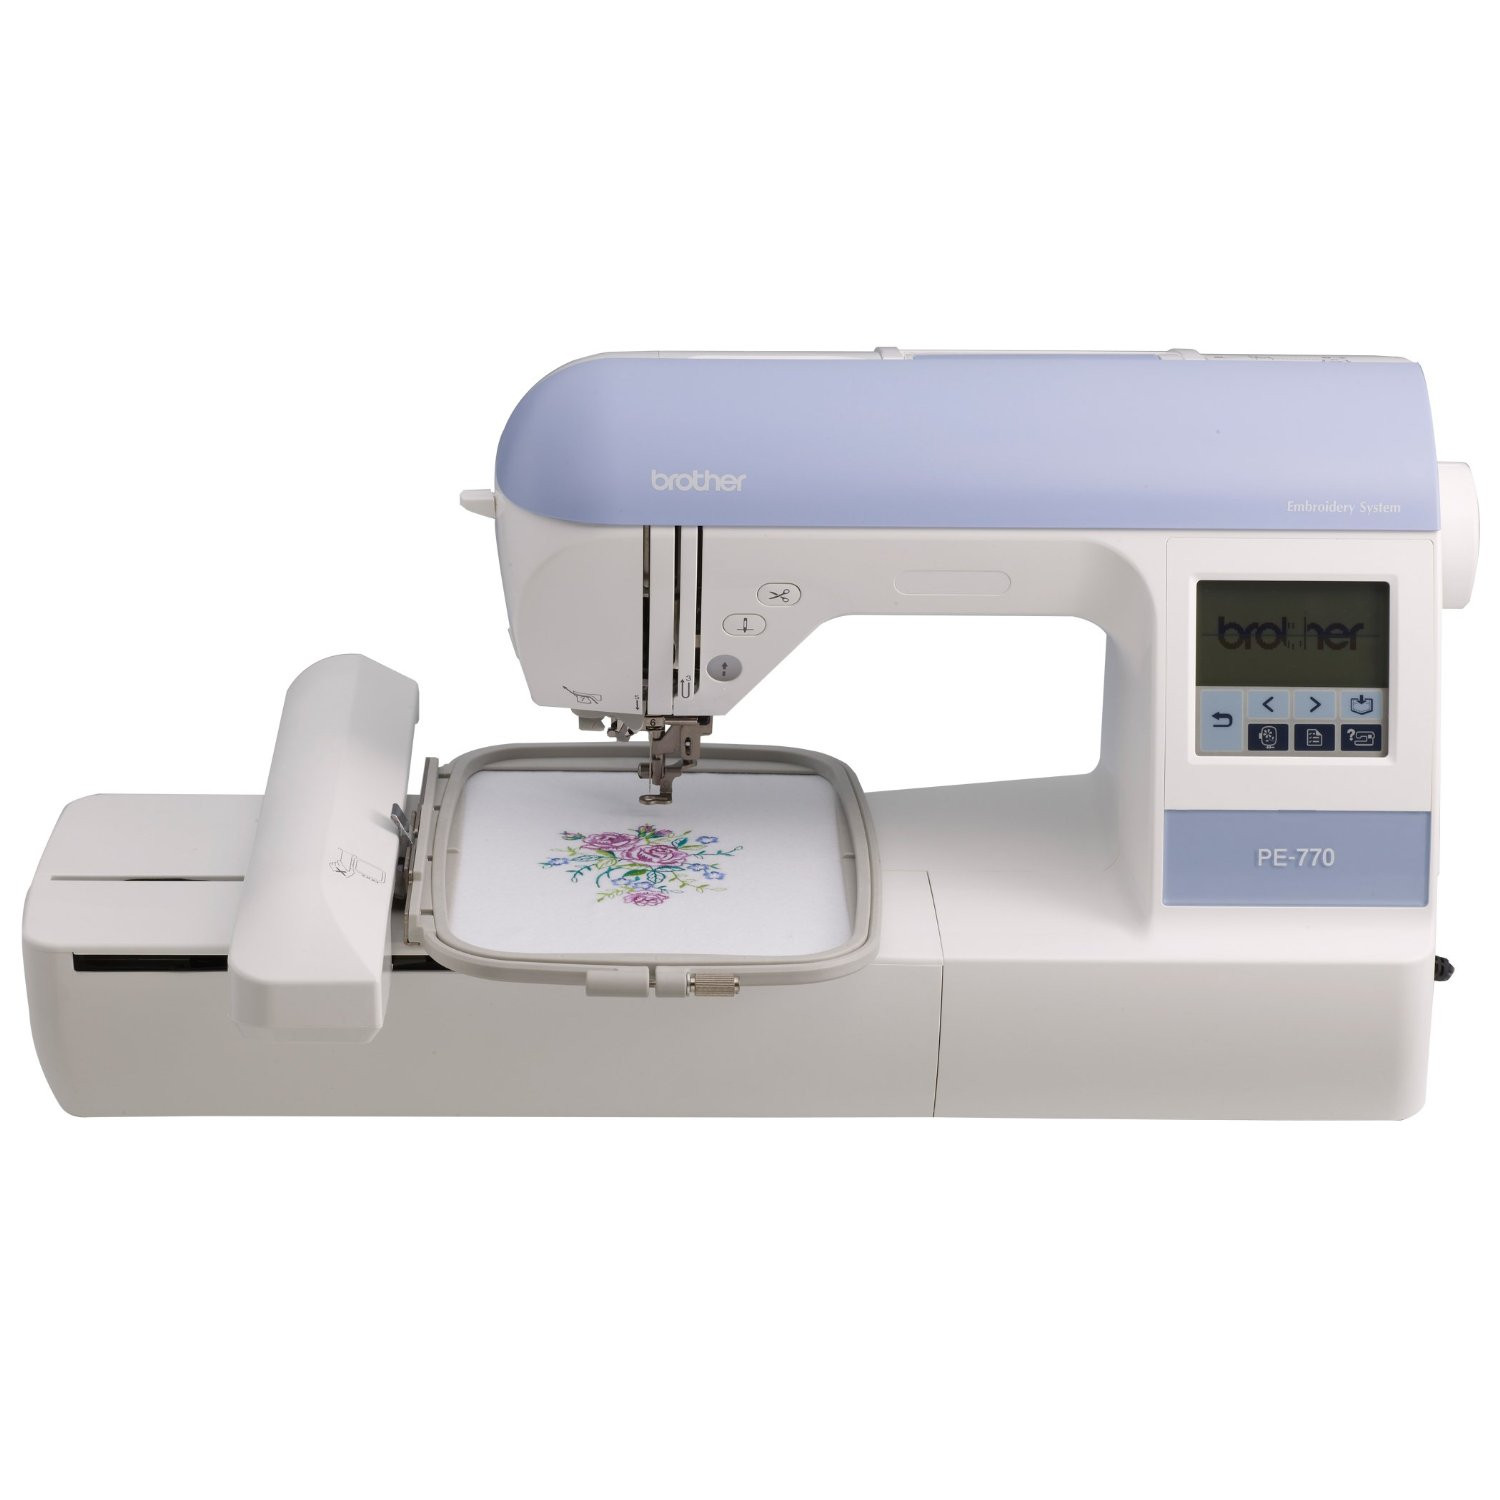 Lovely Can You Run Your Home Business without An Expensive Custom Embroidery Machine Of Awesome 42 Ideas Custom Embroidery Machine